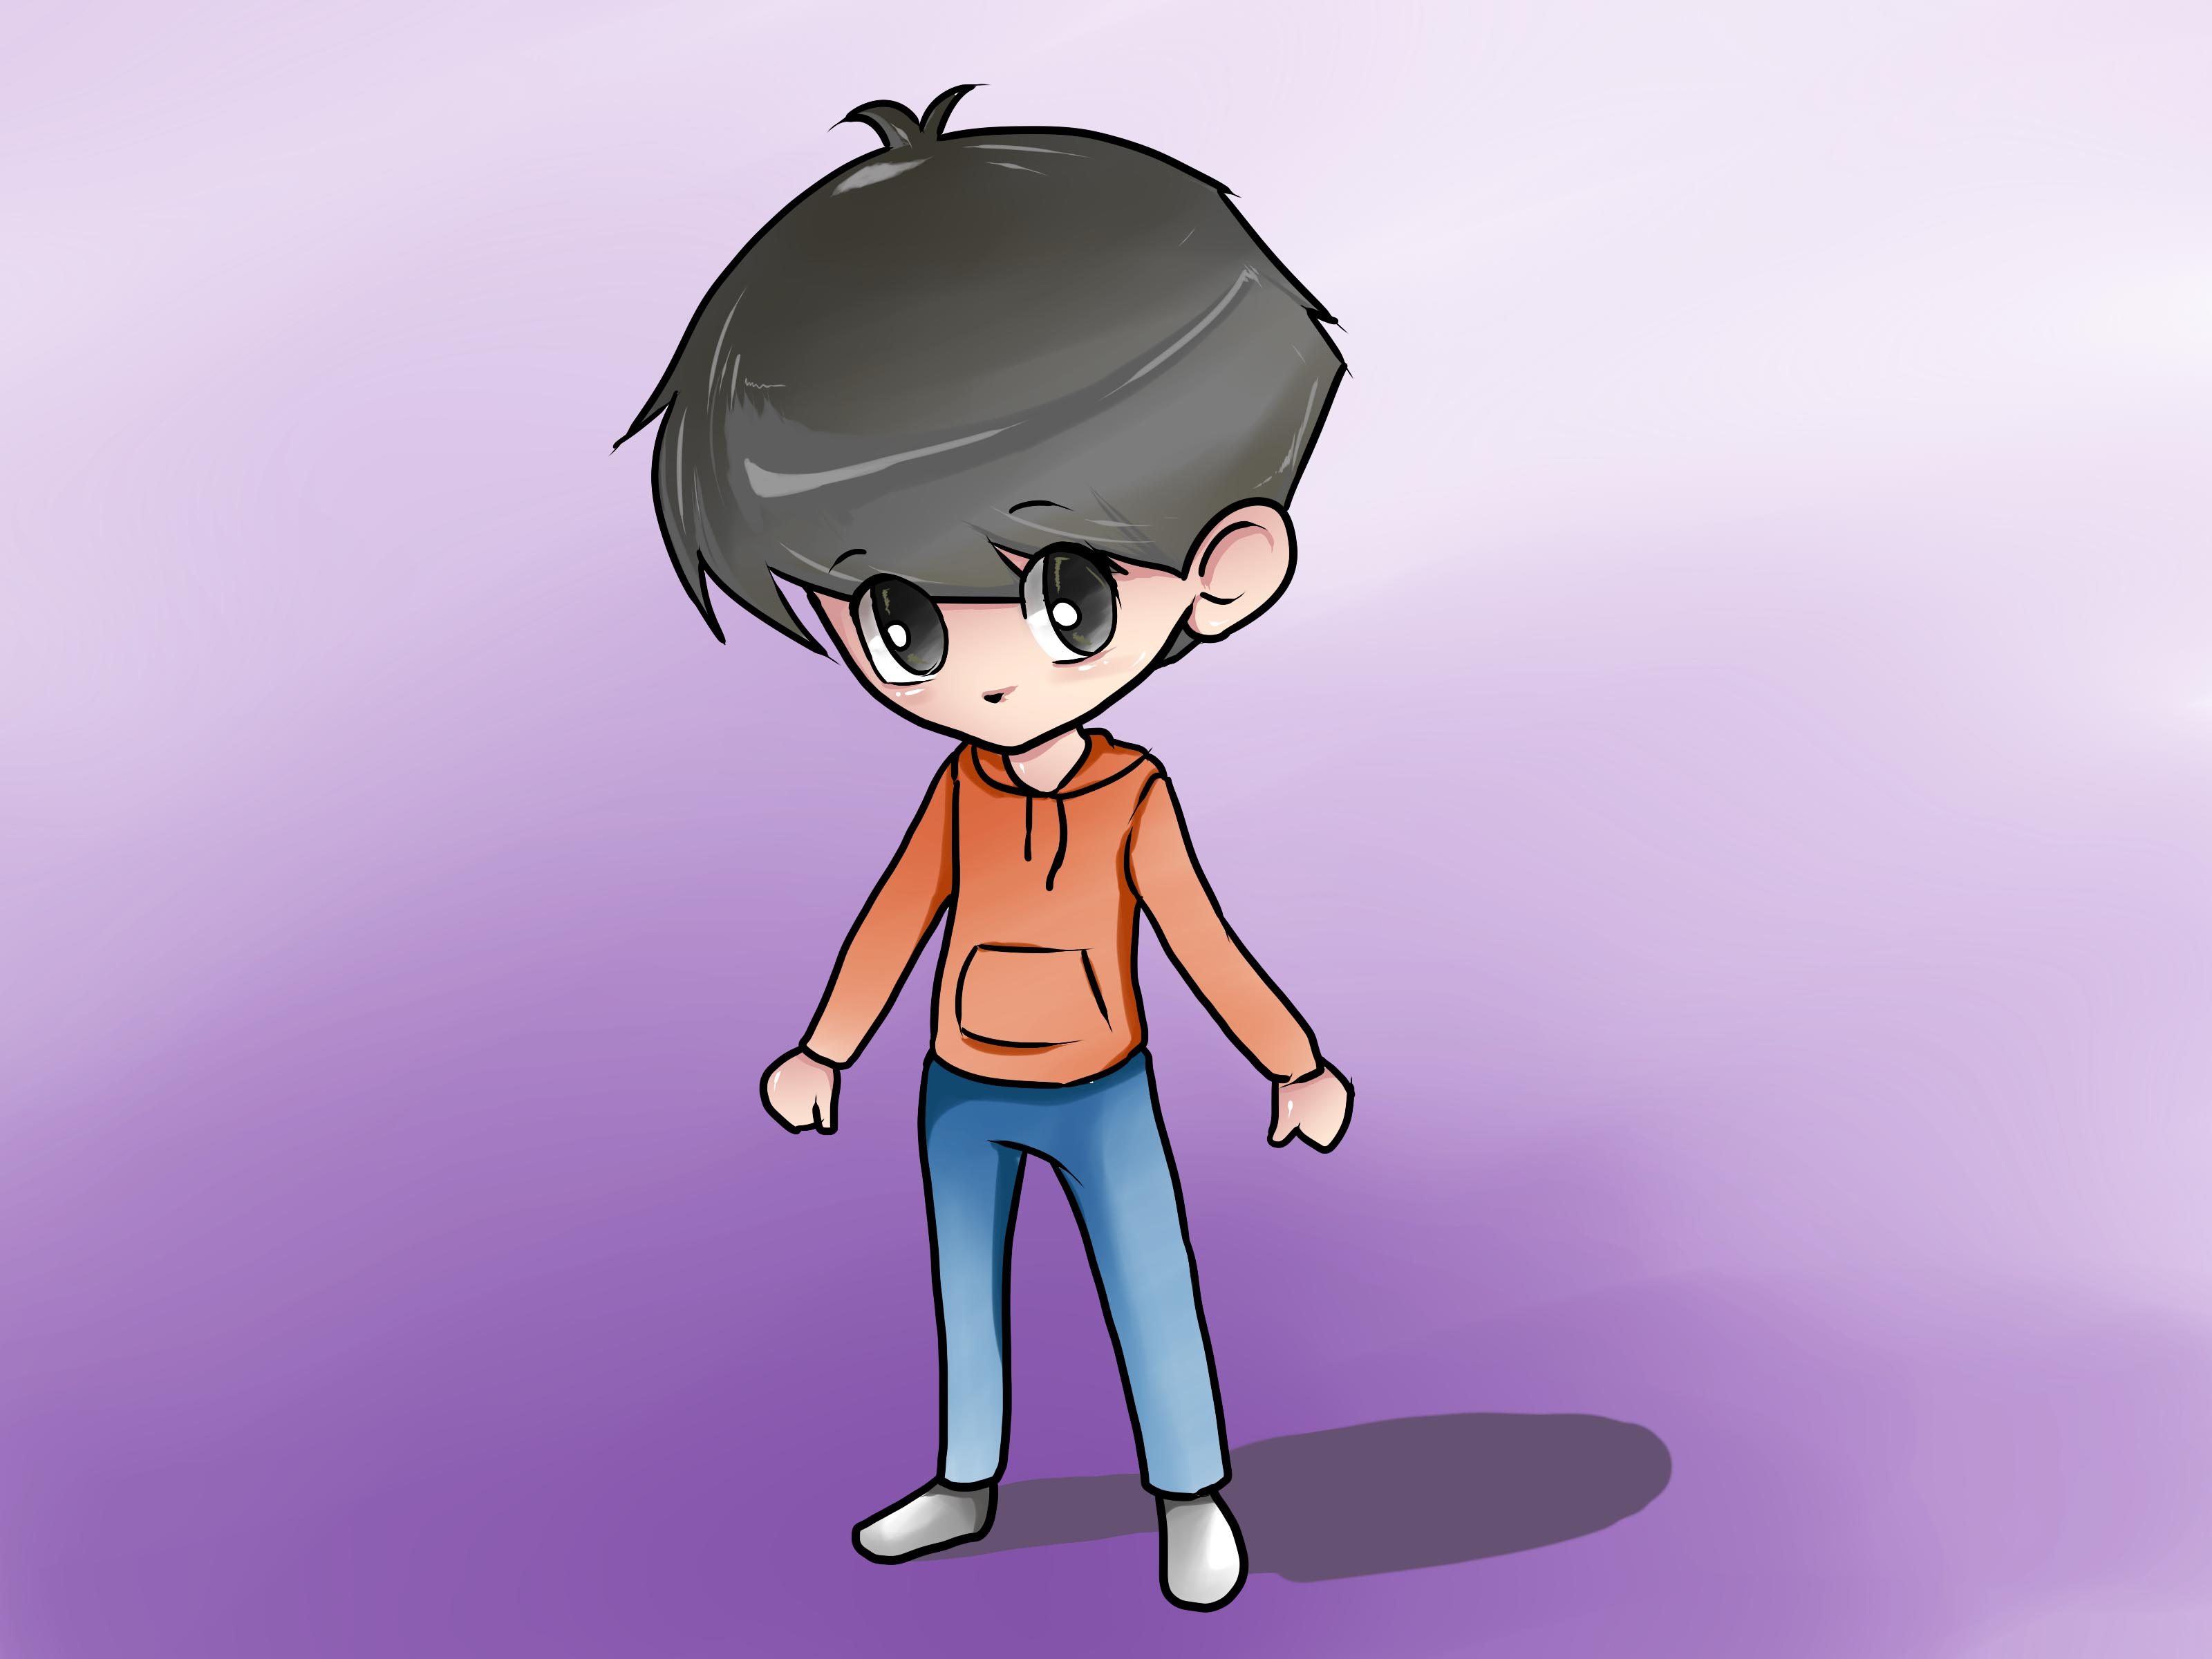 3200x2400 How To Draw A Chibi Boy (With Pictures)